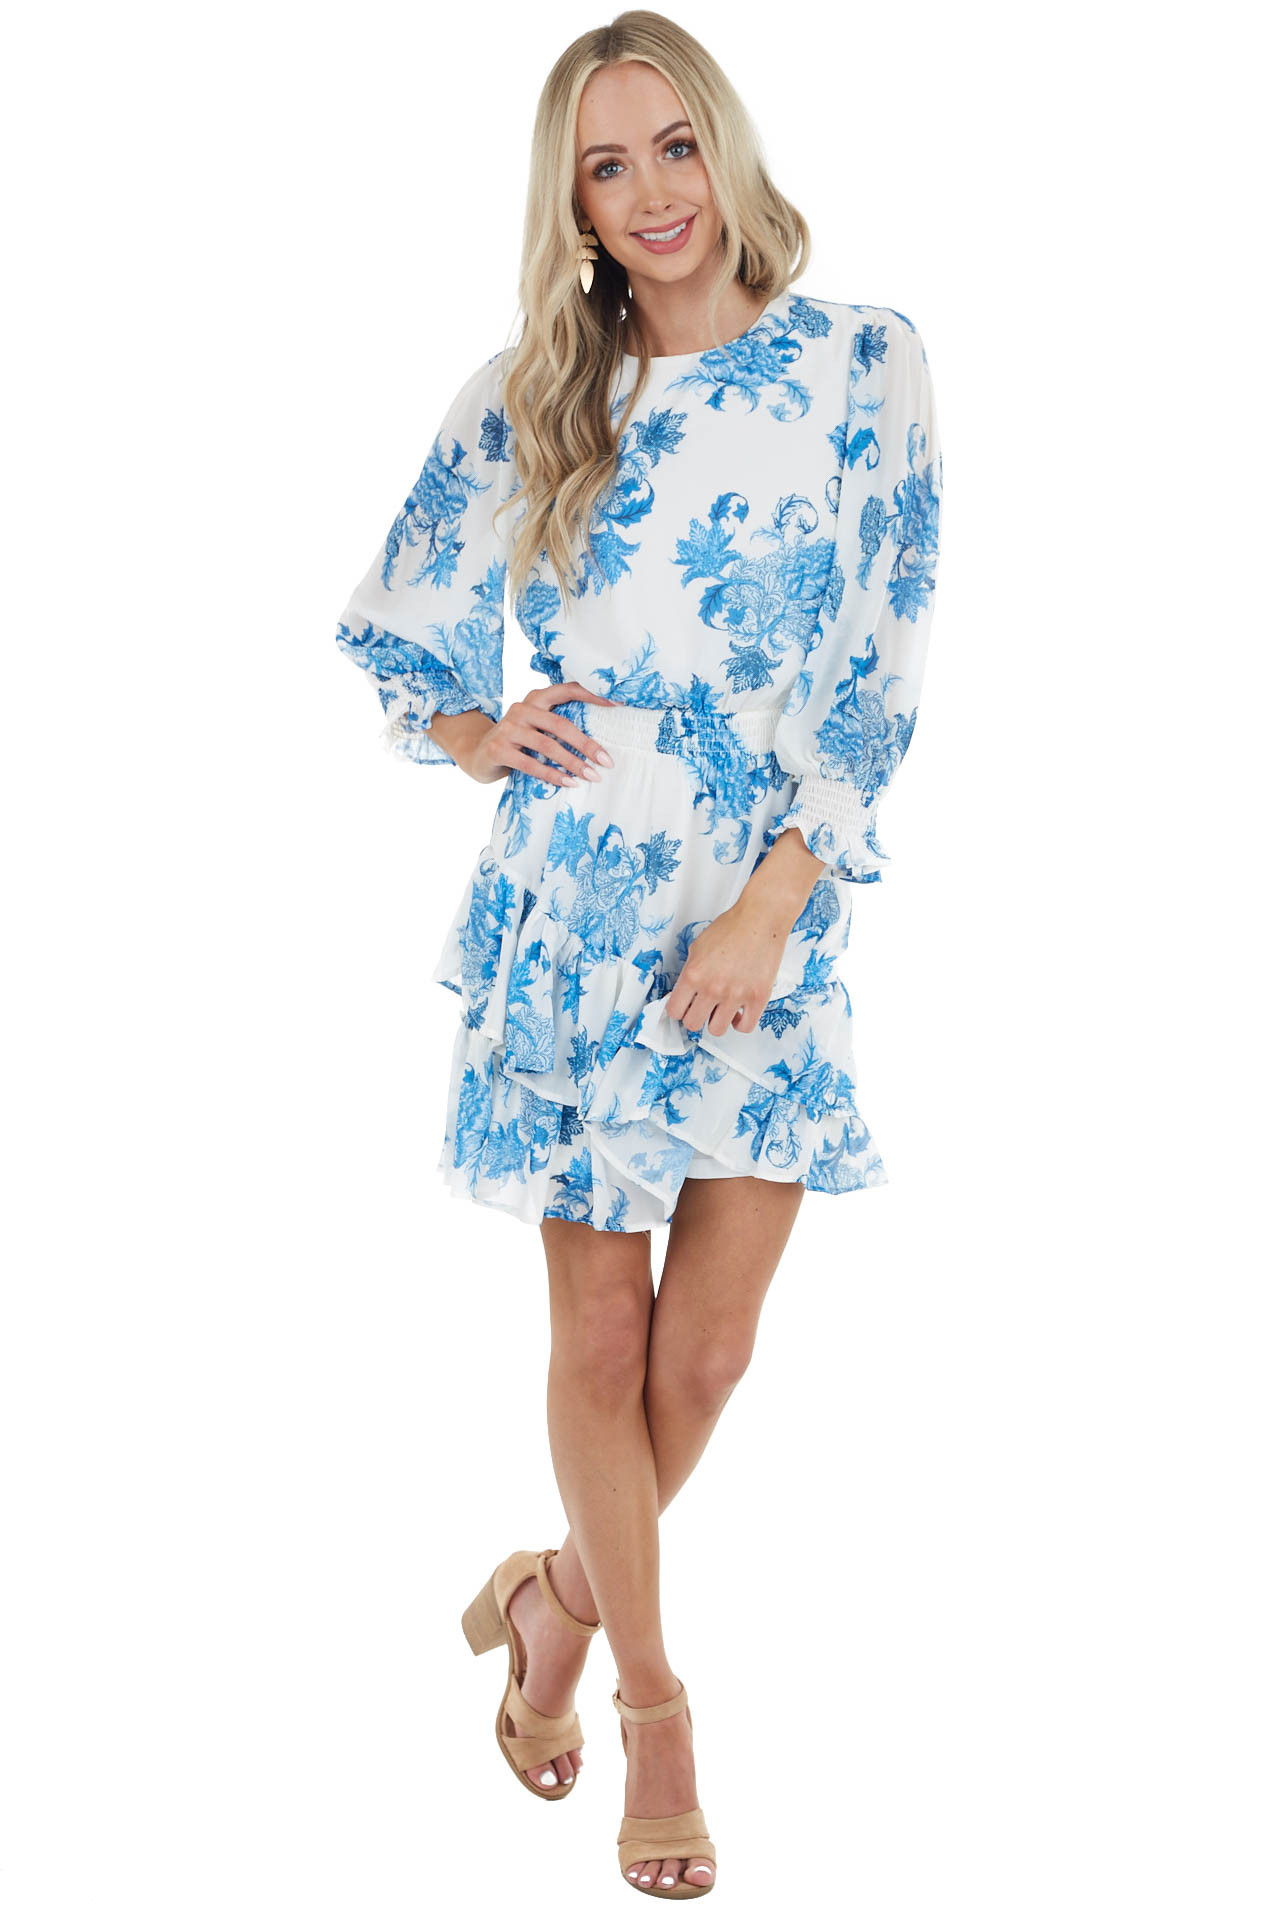 Ocean and Ivory Floral Mini Dress with Long Bubble Sleeves